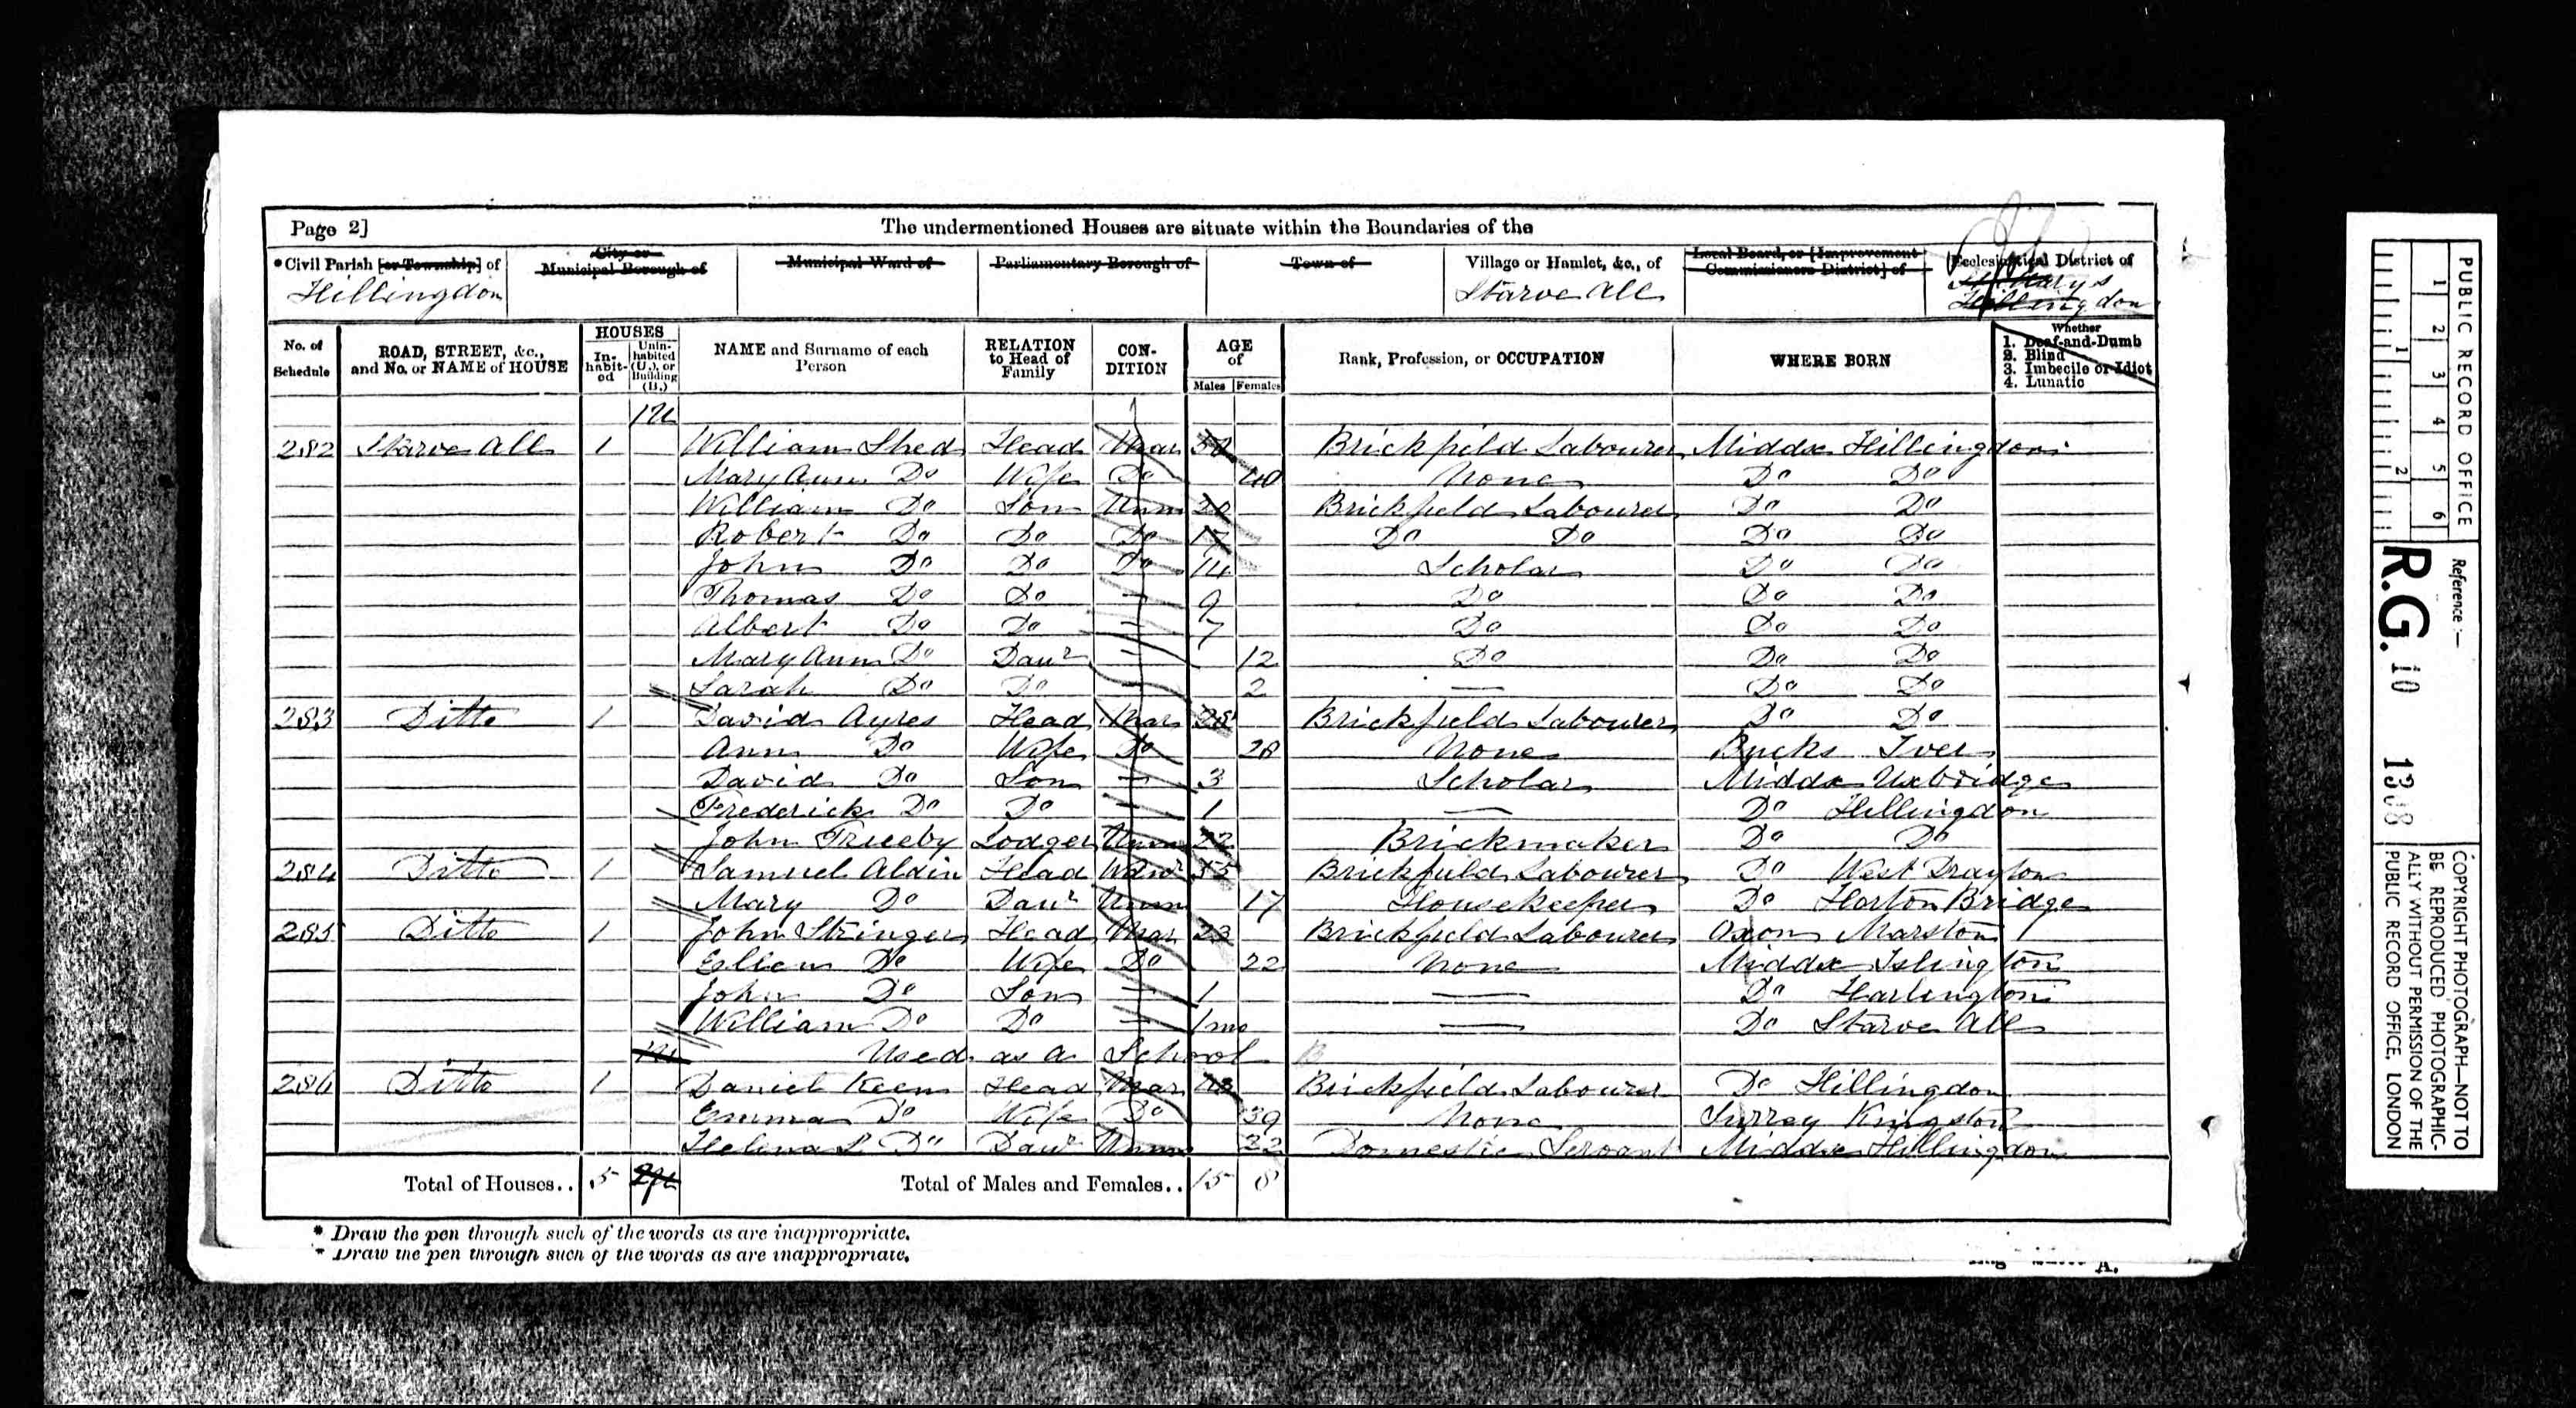 1871 England Census Record for William Shed